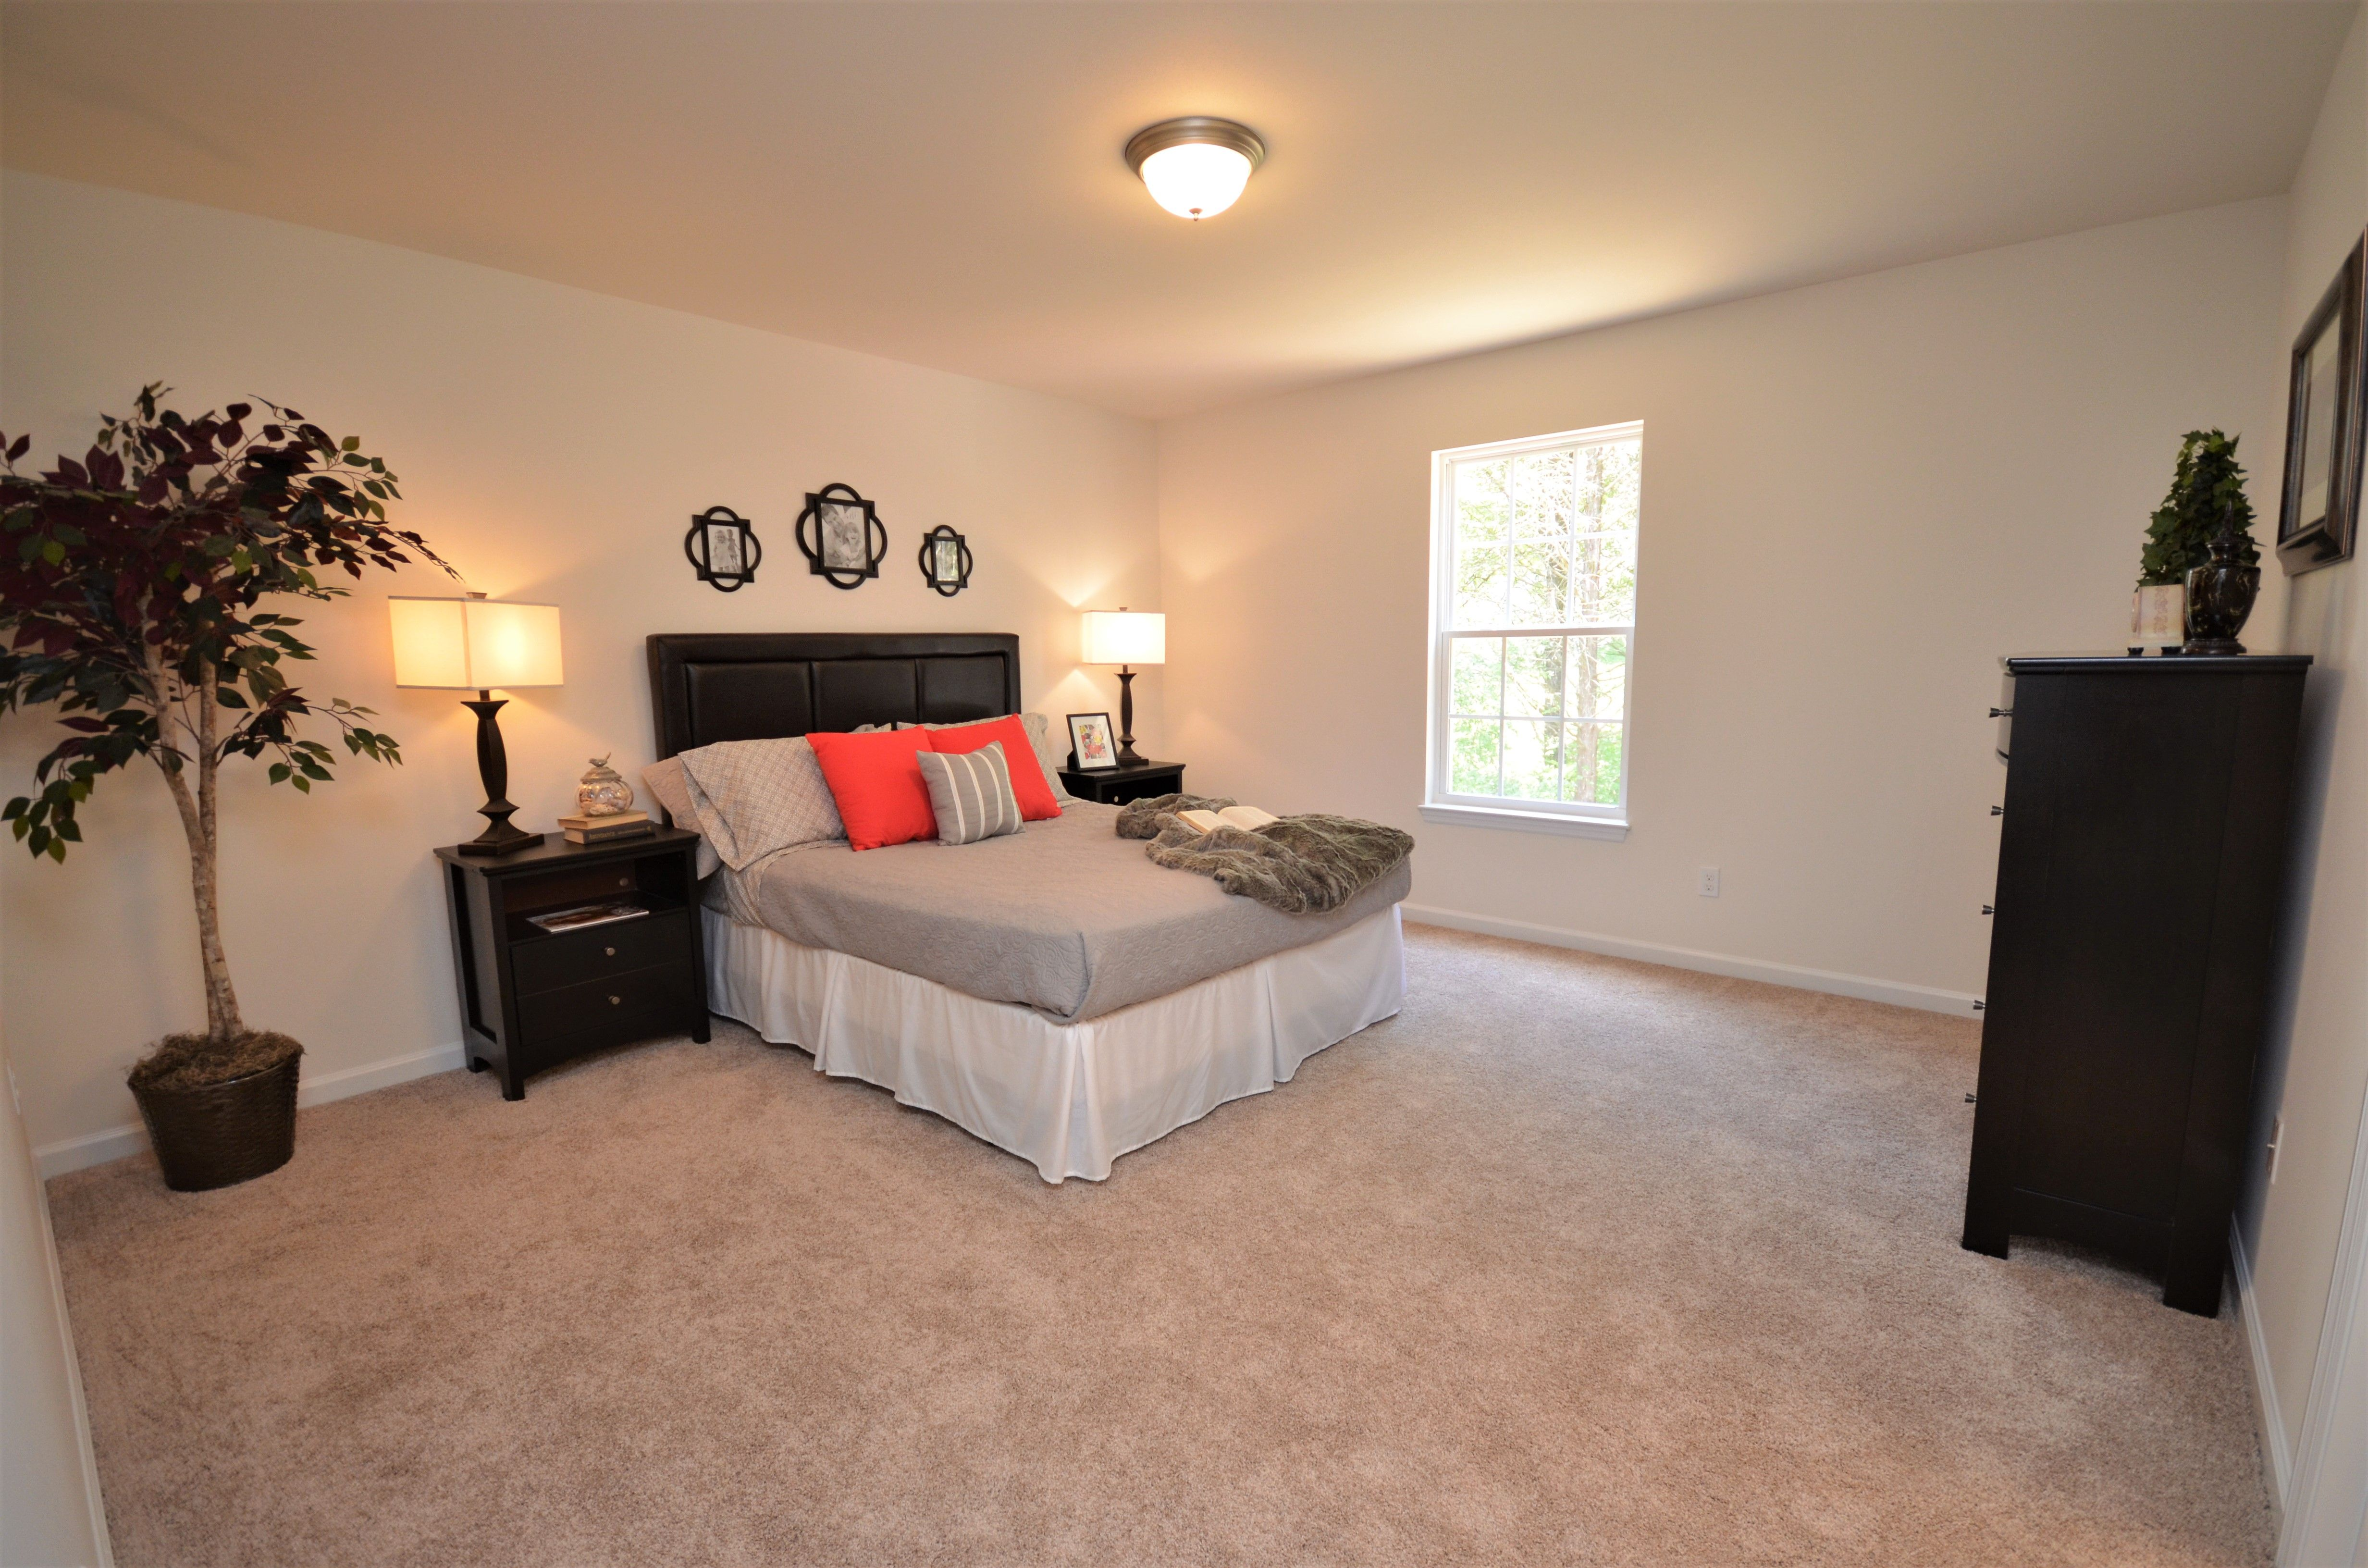 Bedroom featured in The Piedmont By Cannon Builders, Inc.  in St. Louis, MO